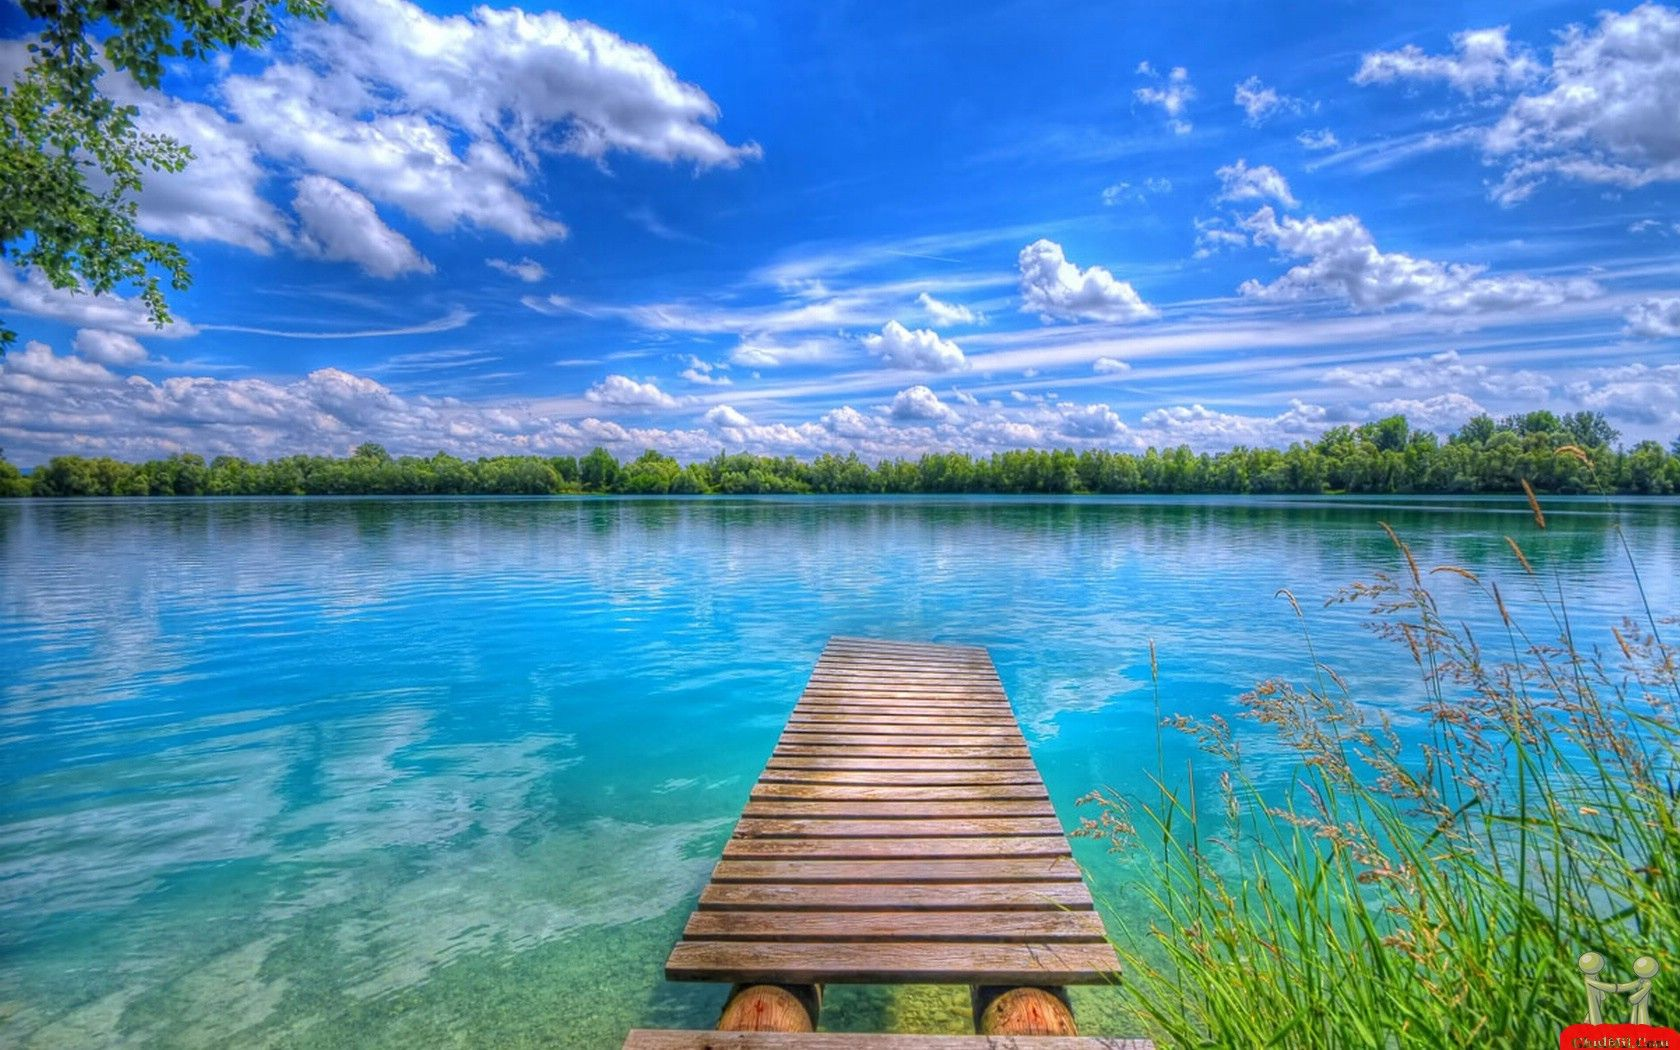 beautiful view wallpaper,natural landscape,nature,sky,water,reflection